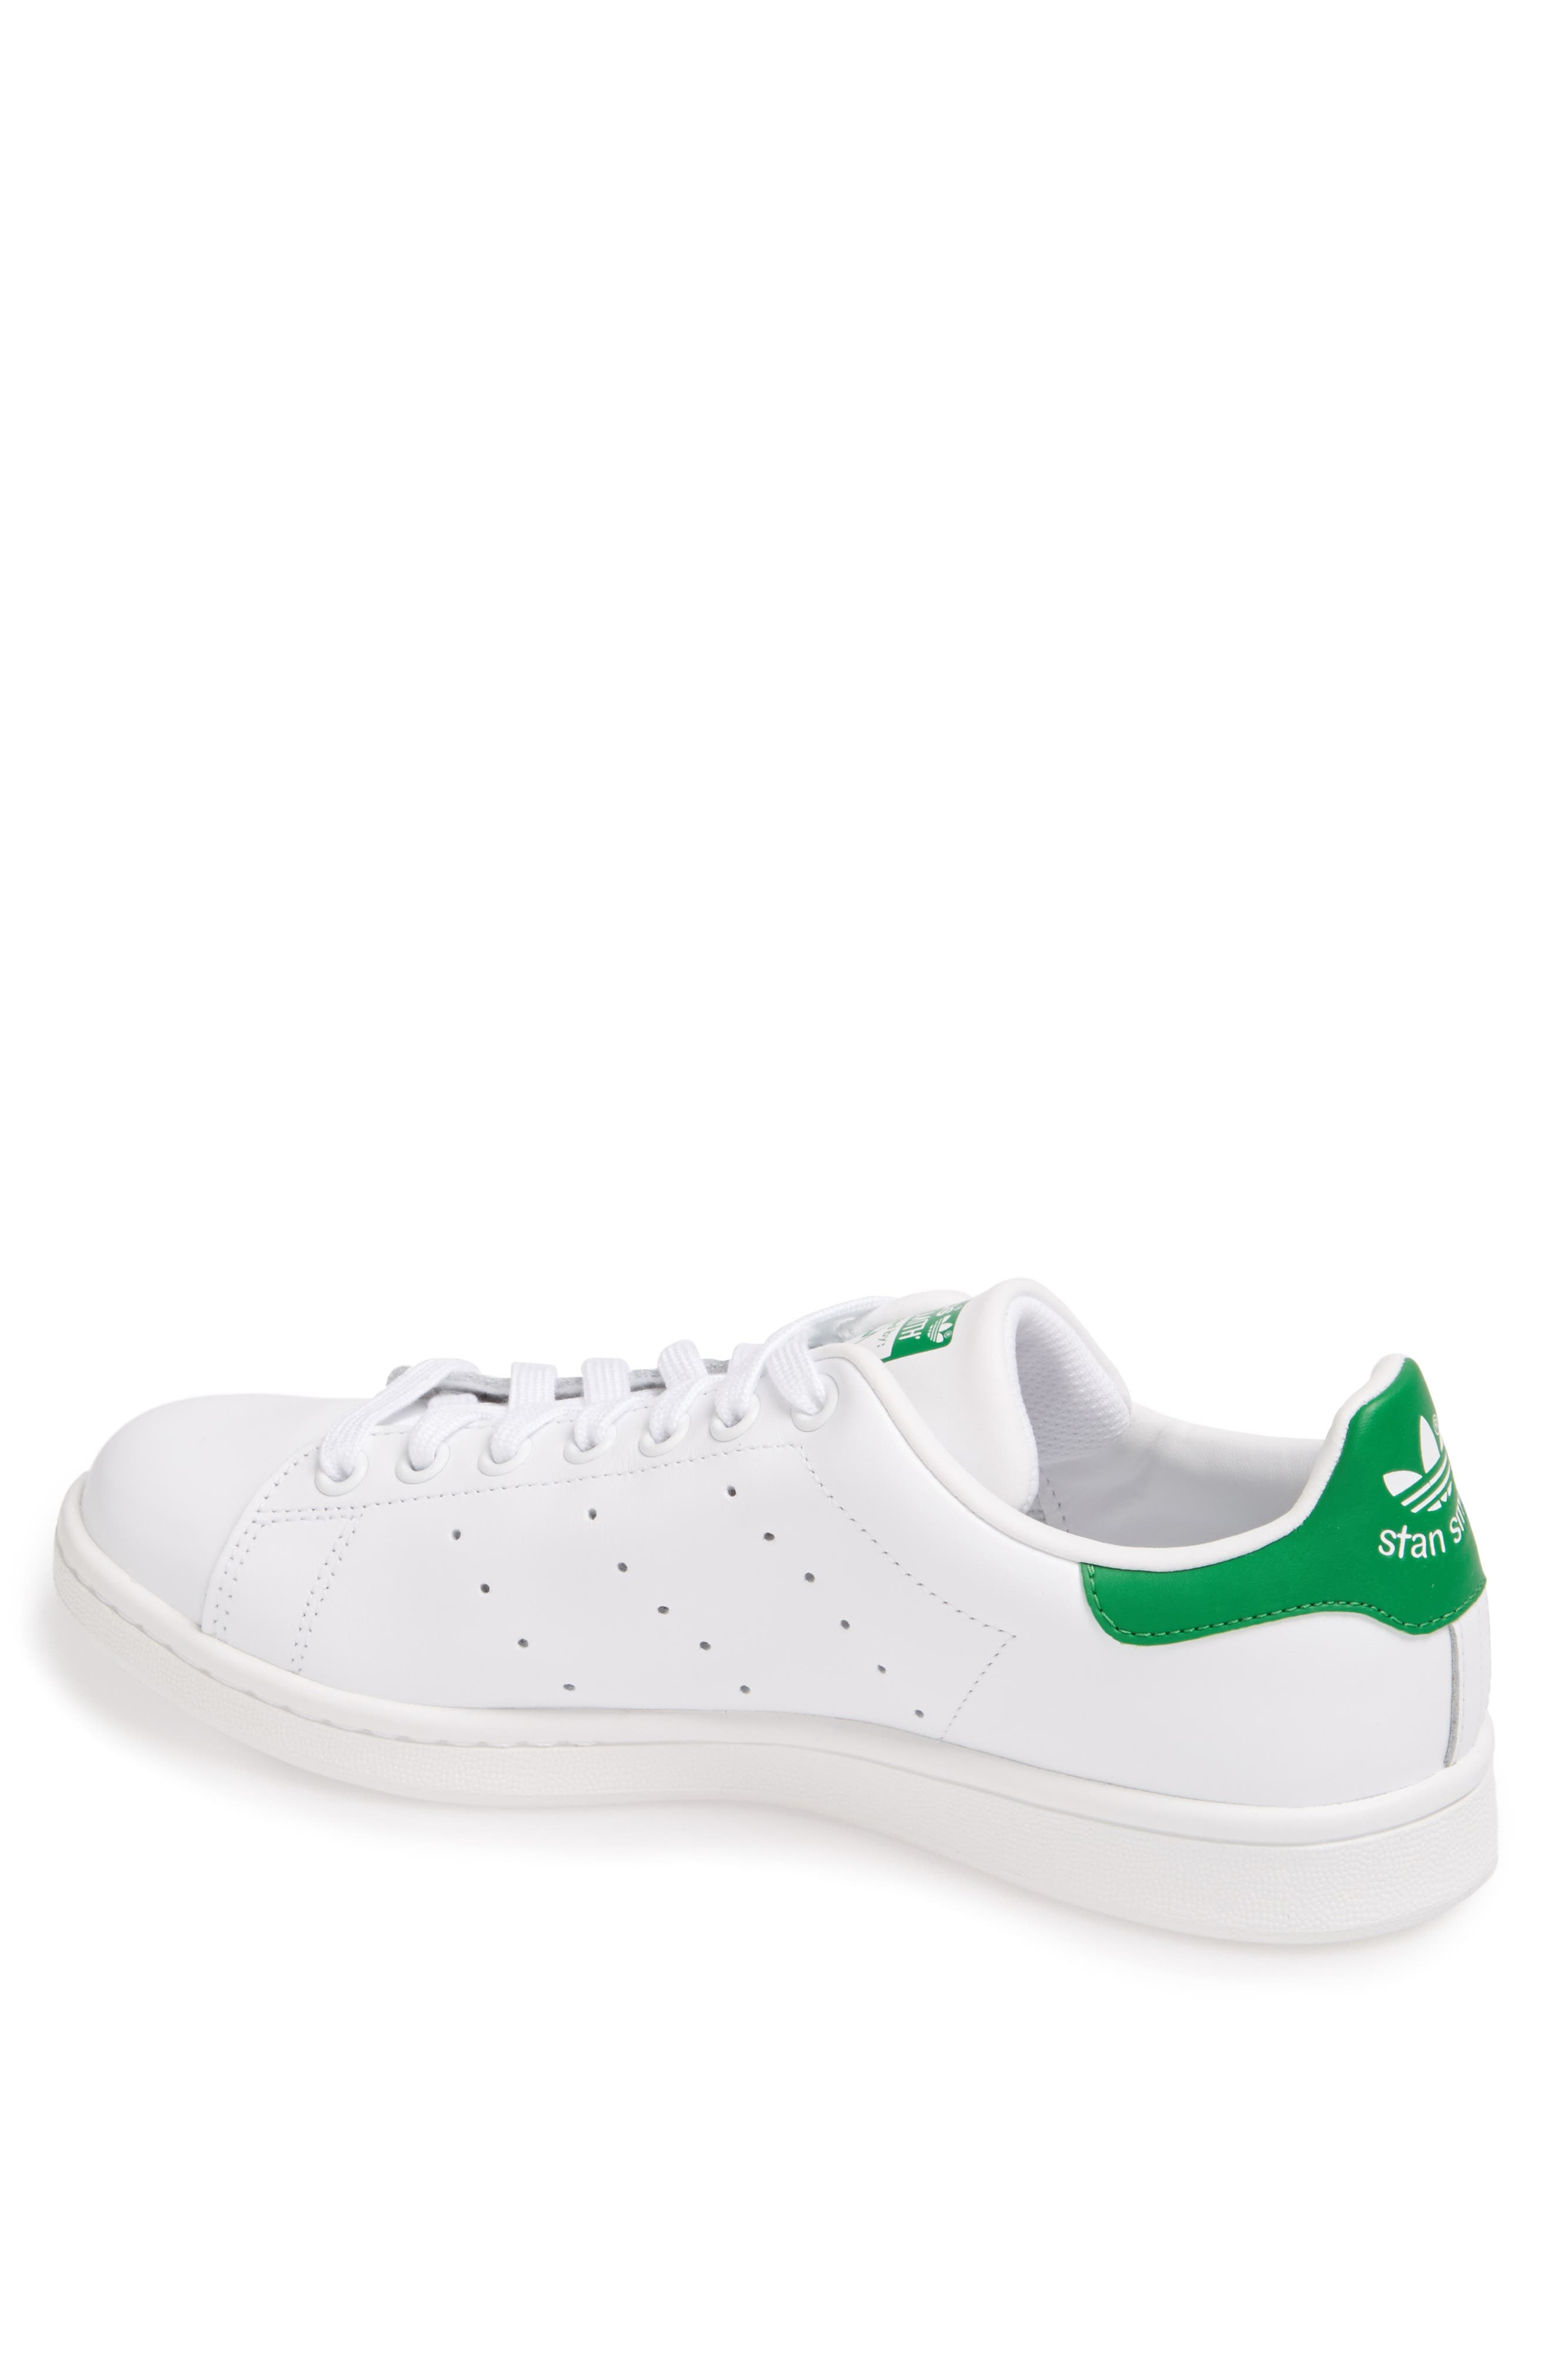 wholesale dealer 270ab 16053 Sneakers View All adidas Shoes   Nordstrom